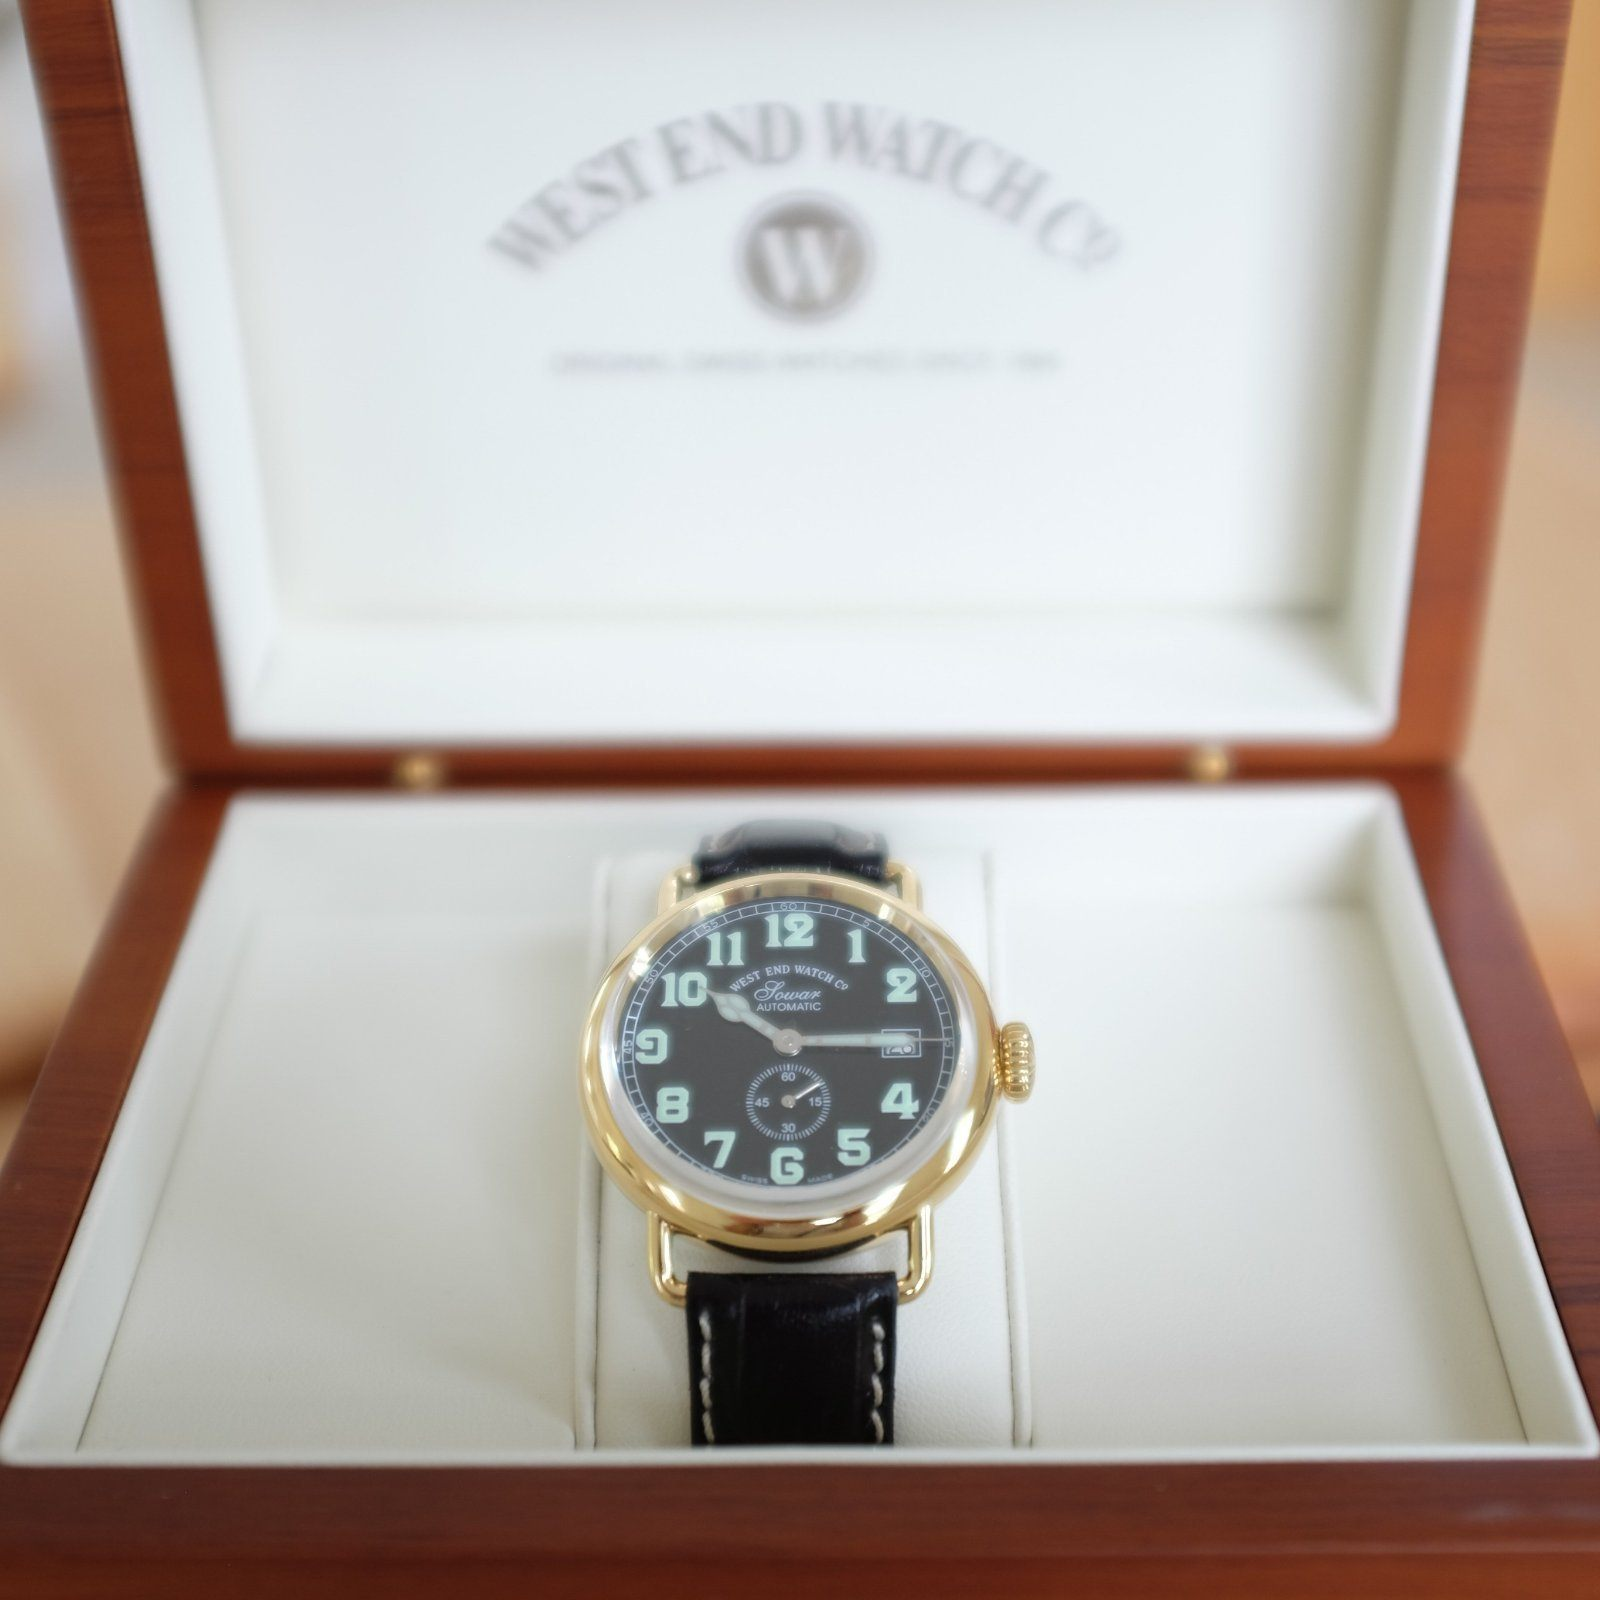 West End Watch Co. Sowar 1916 - Black Dial, Gold PVD Case